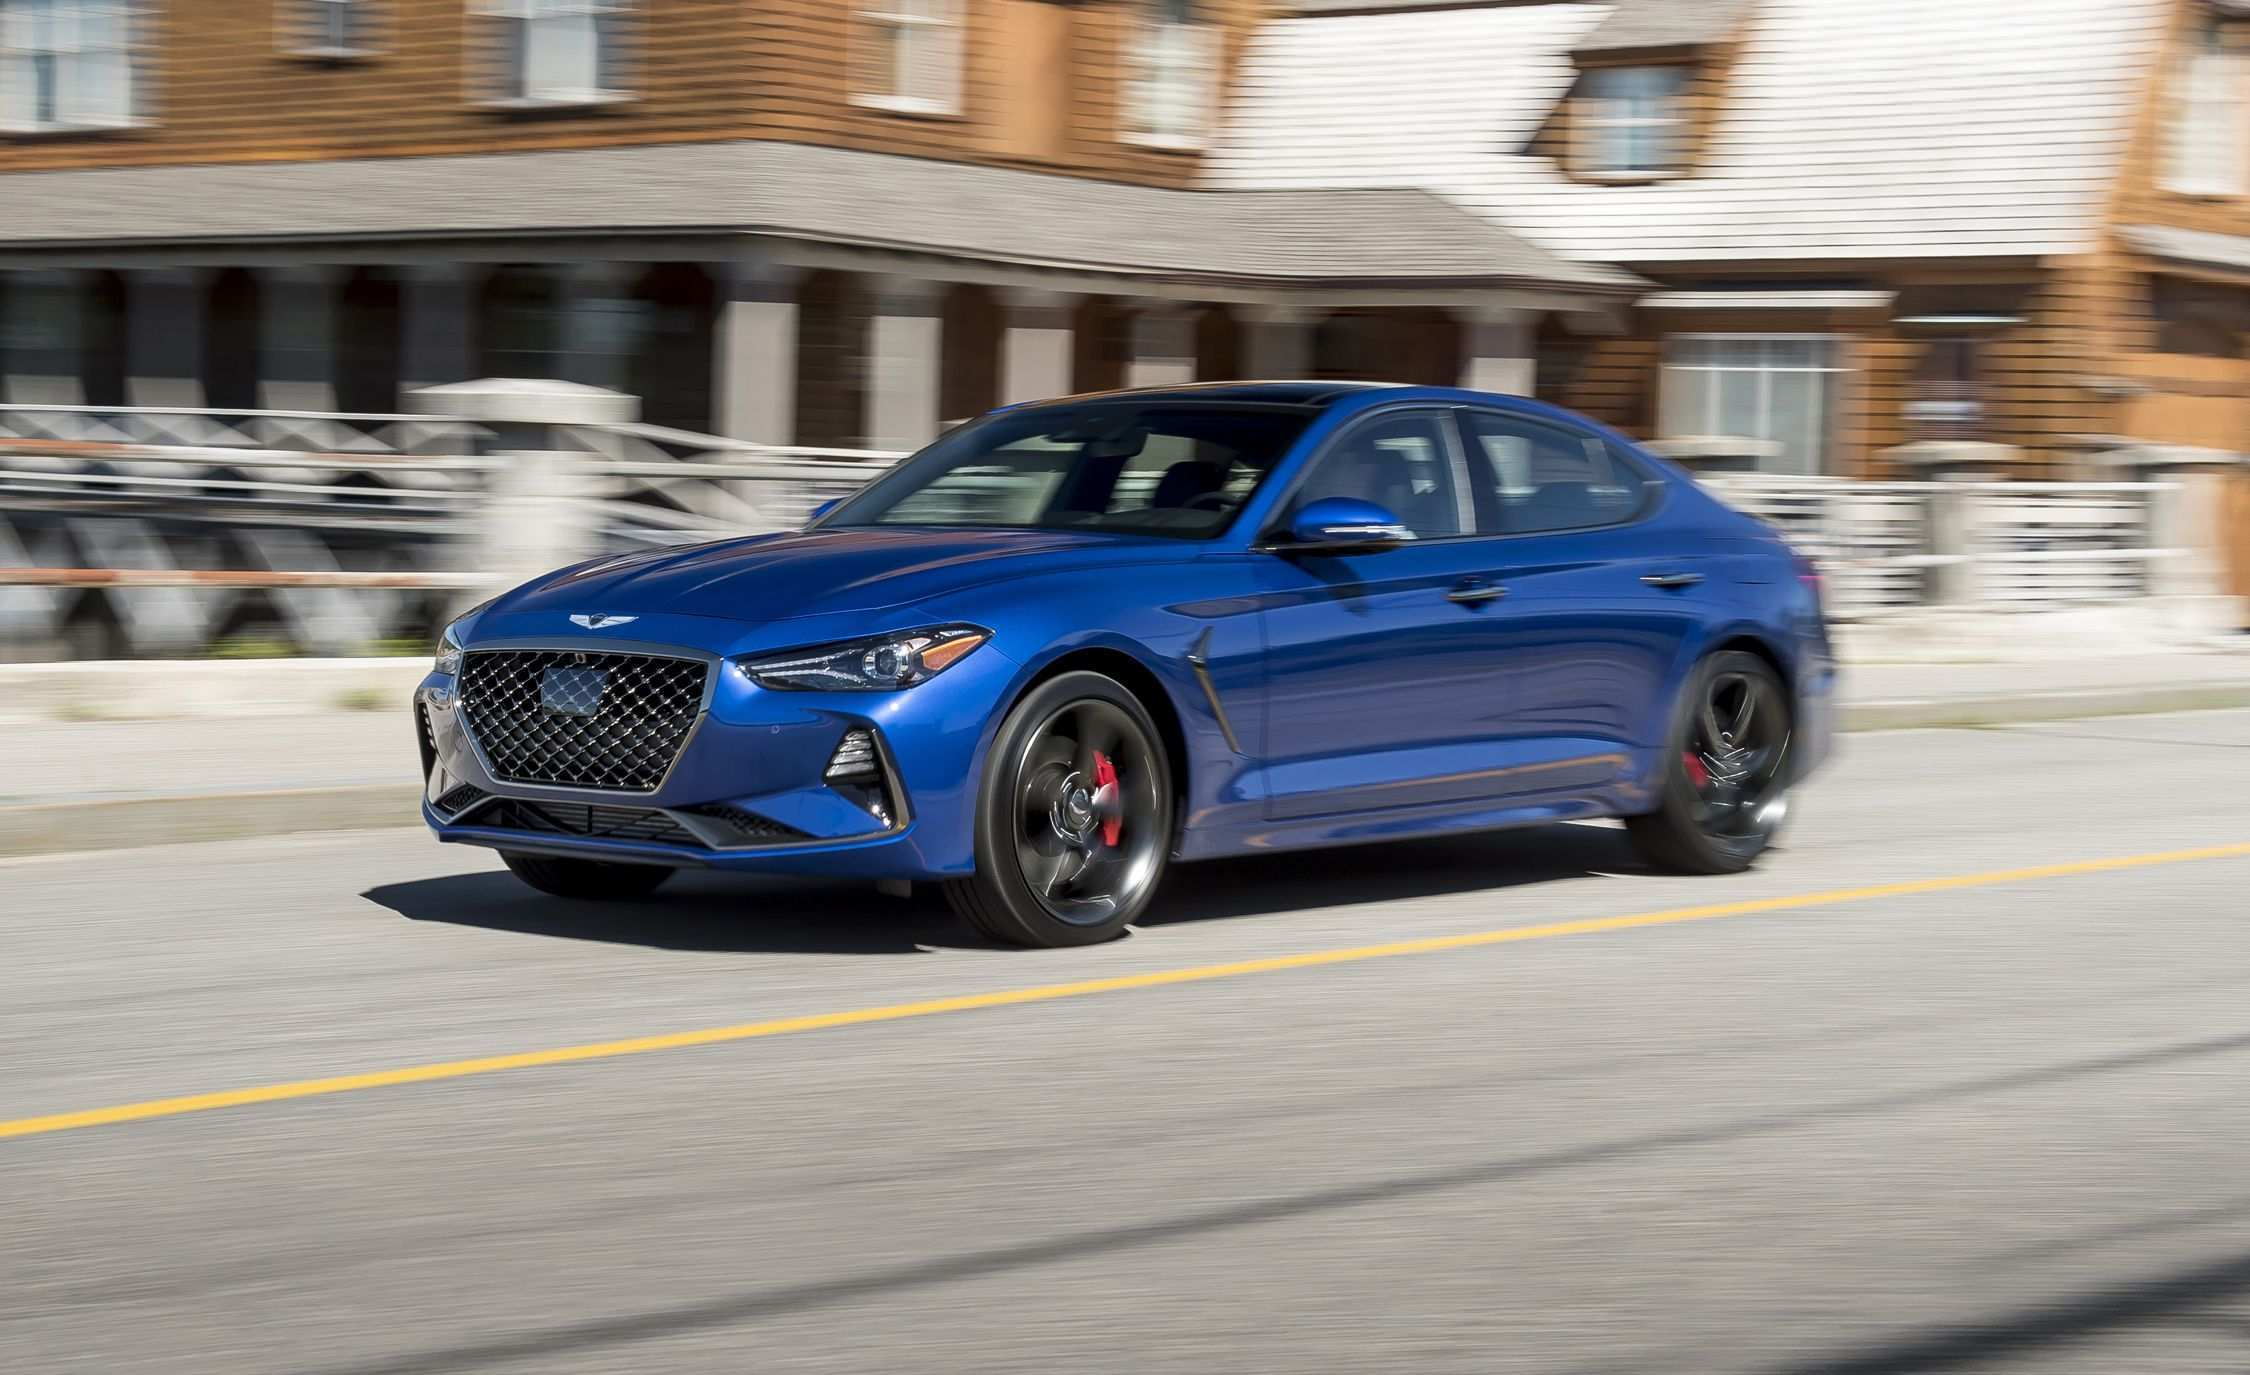 34 Great 2019 Genesis G70 Specs Review by 2019 Genesis G70 Specs